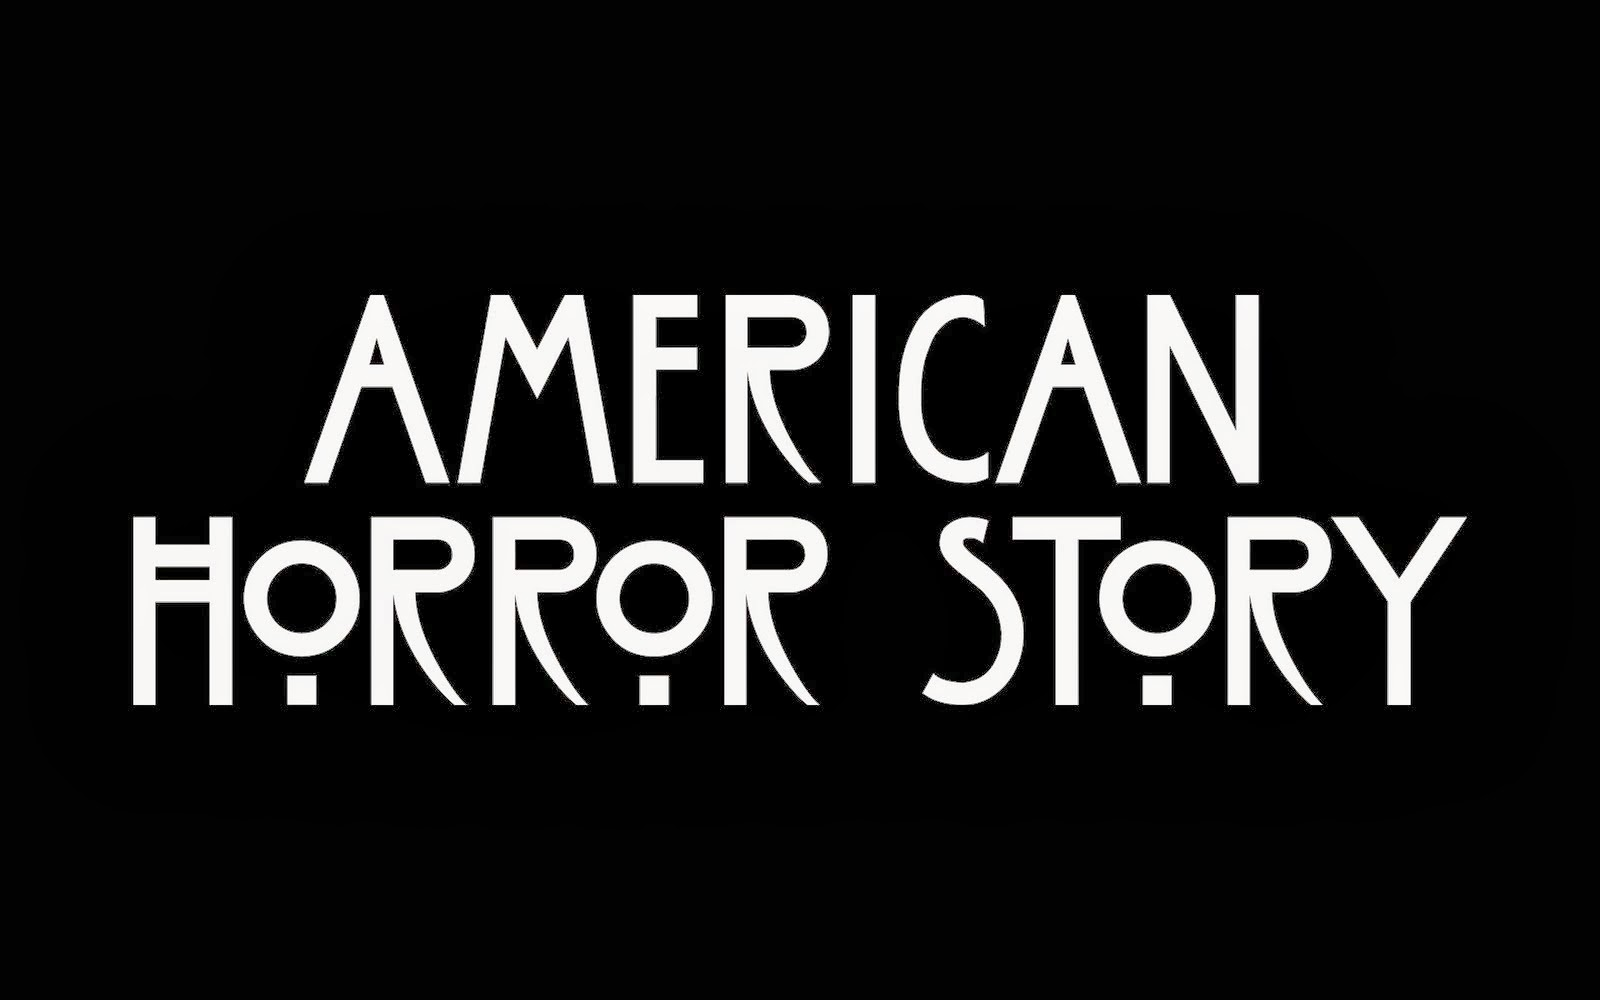 6 American Horror Story Font Images